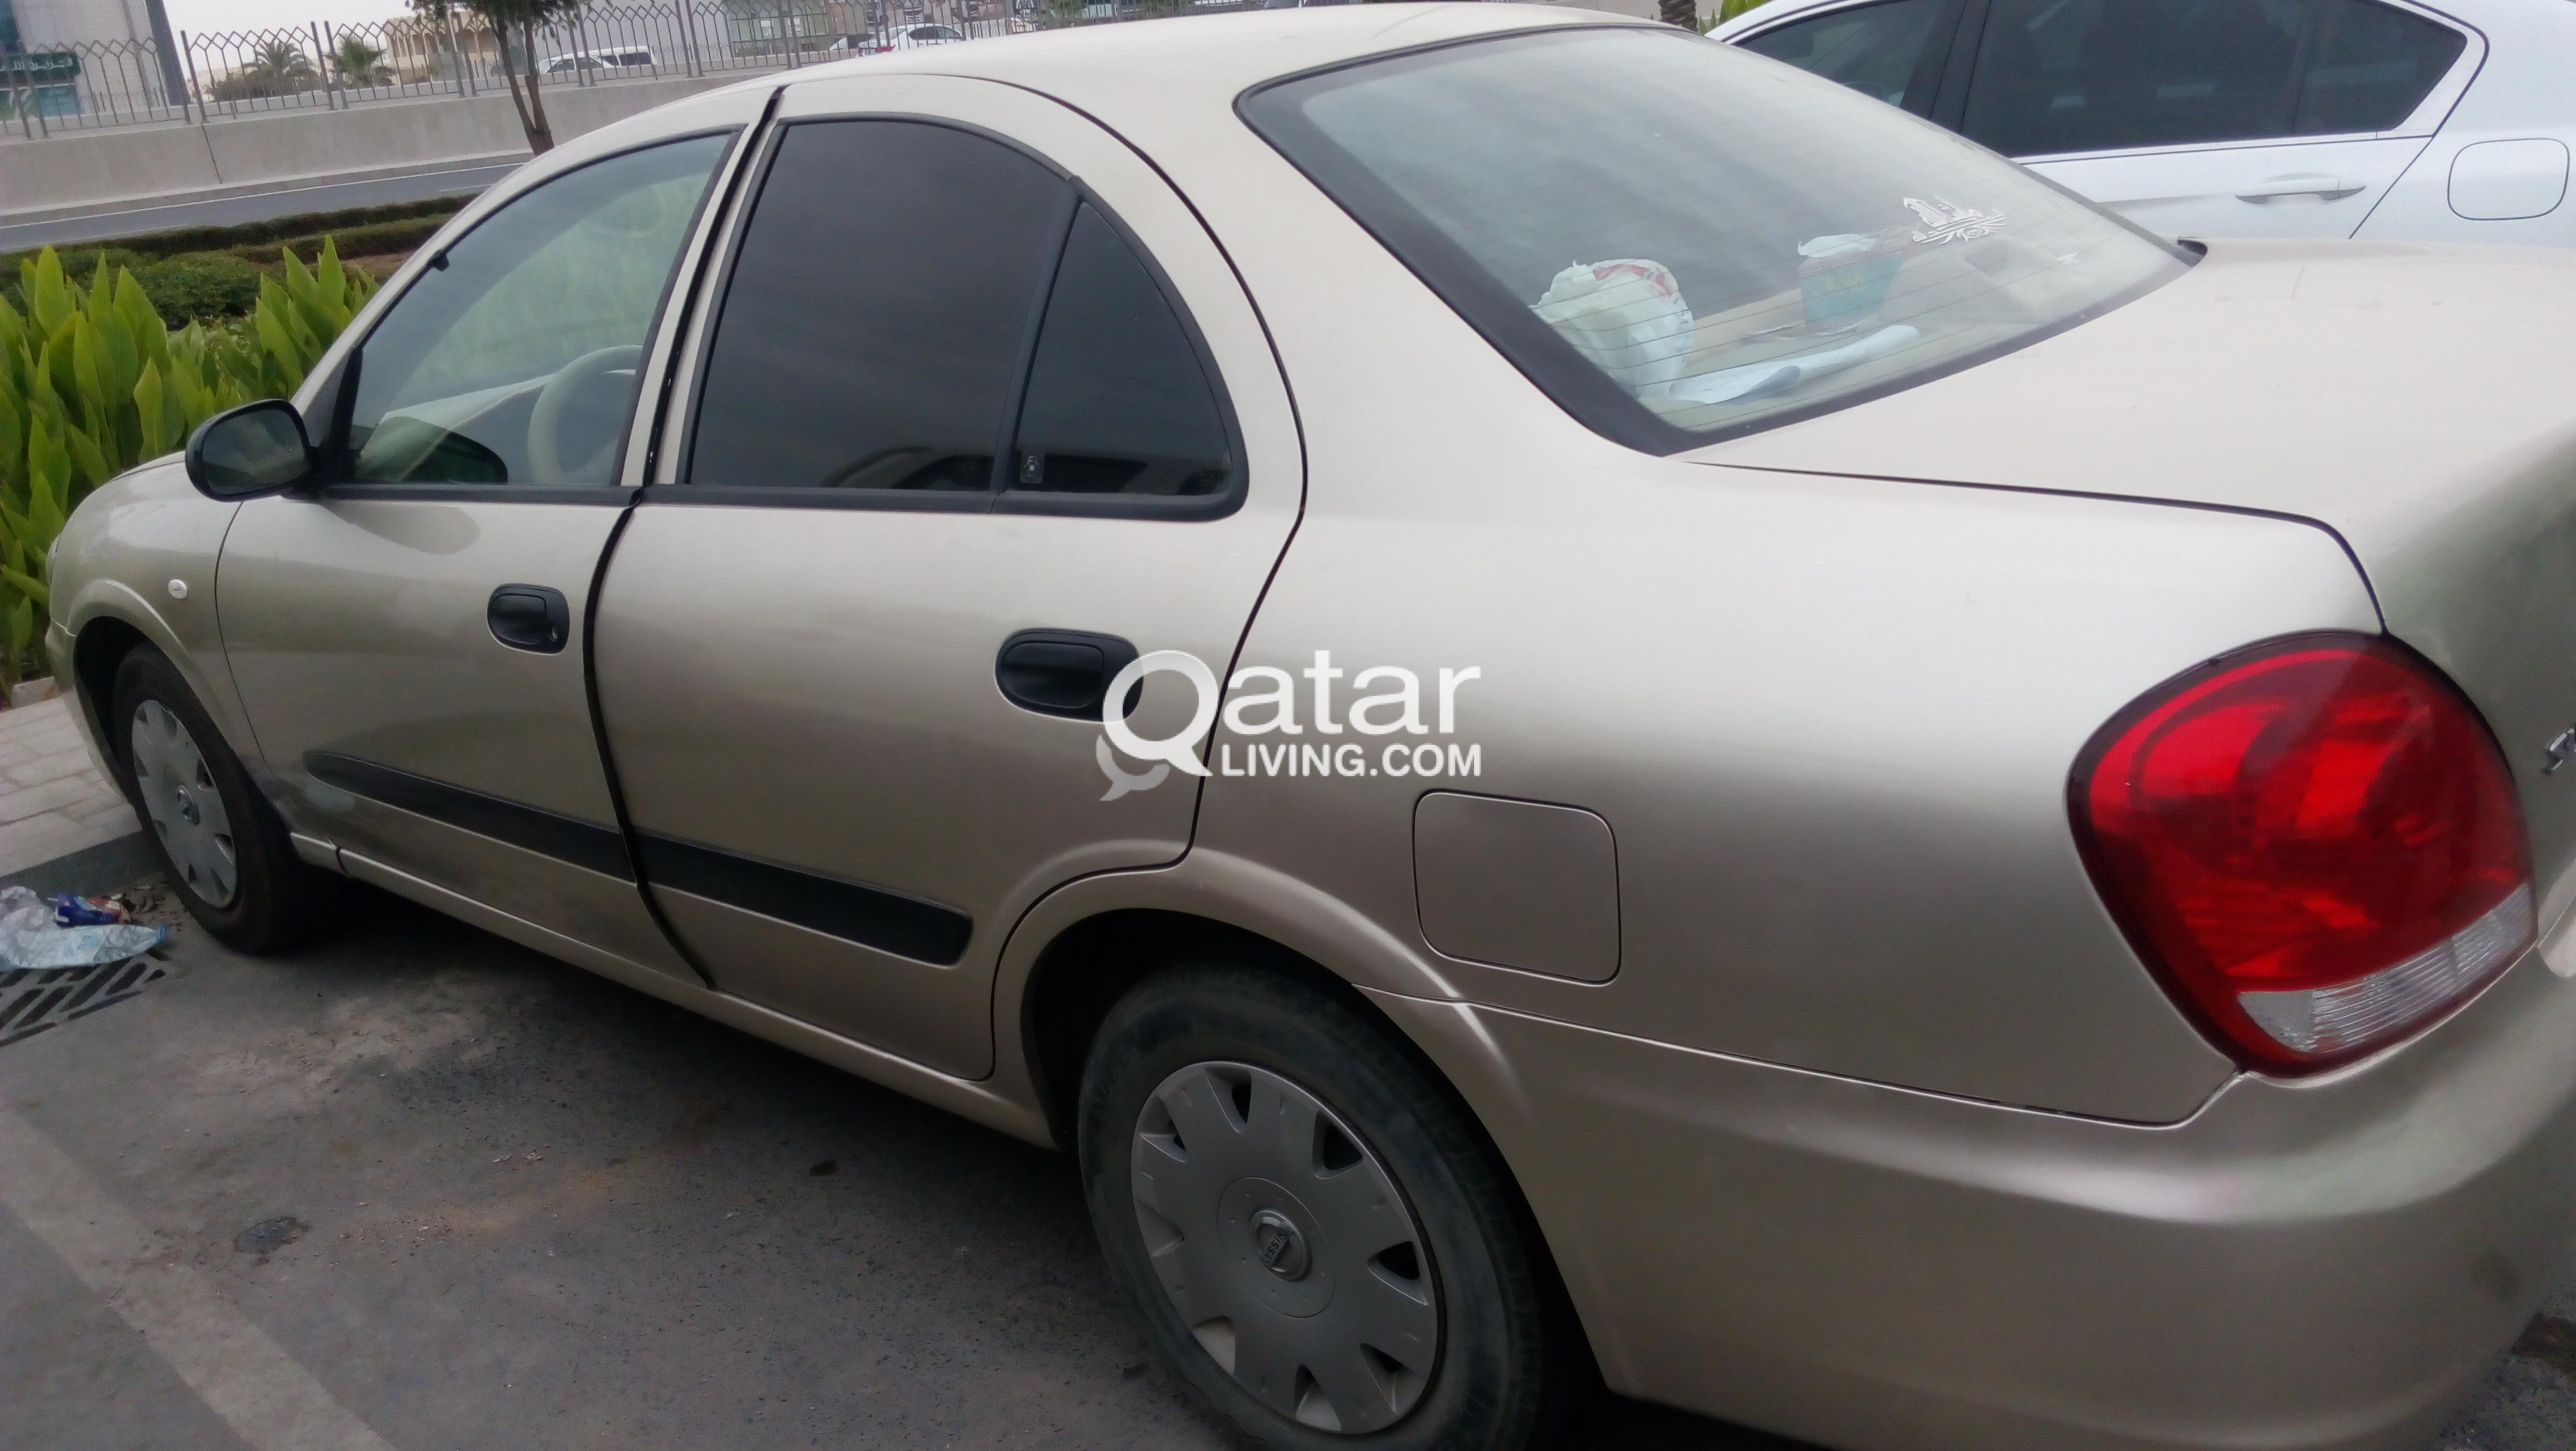 Urgent Sale For Only Serious Buyer Nissan Sunny 2010 Saloon Japan